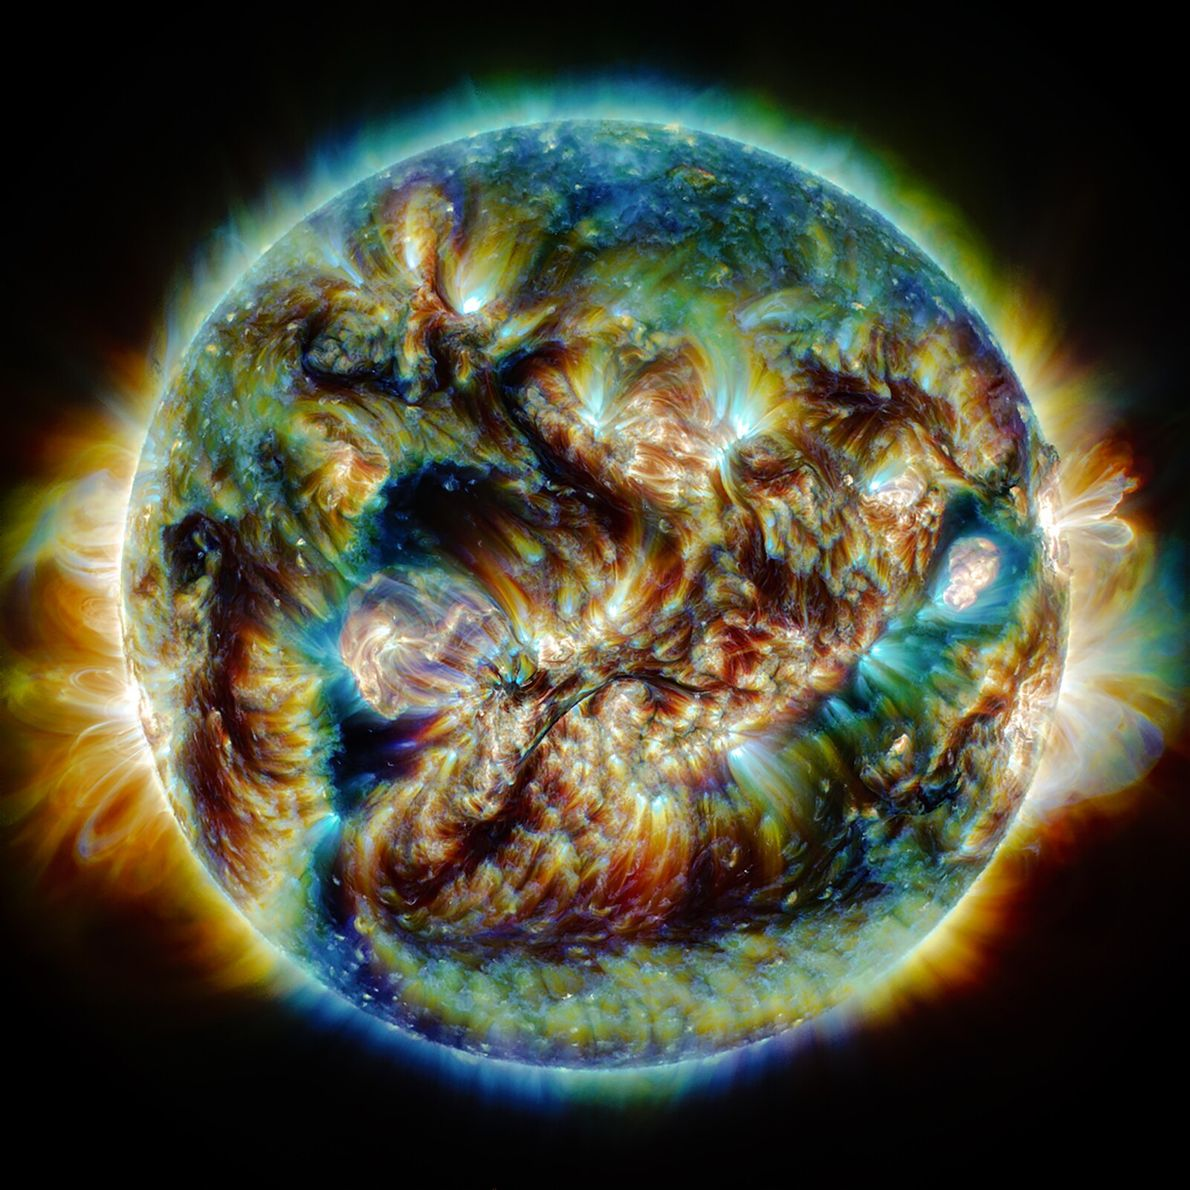 Using imagery from the Solar Dynamics Laboratory, the creator of this image wanted to demonstrate the ...